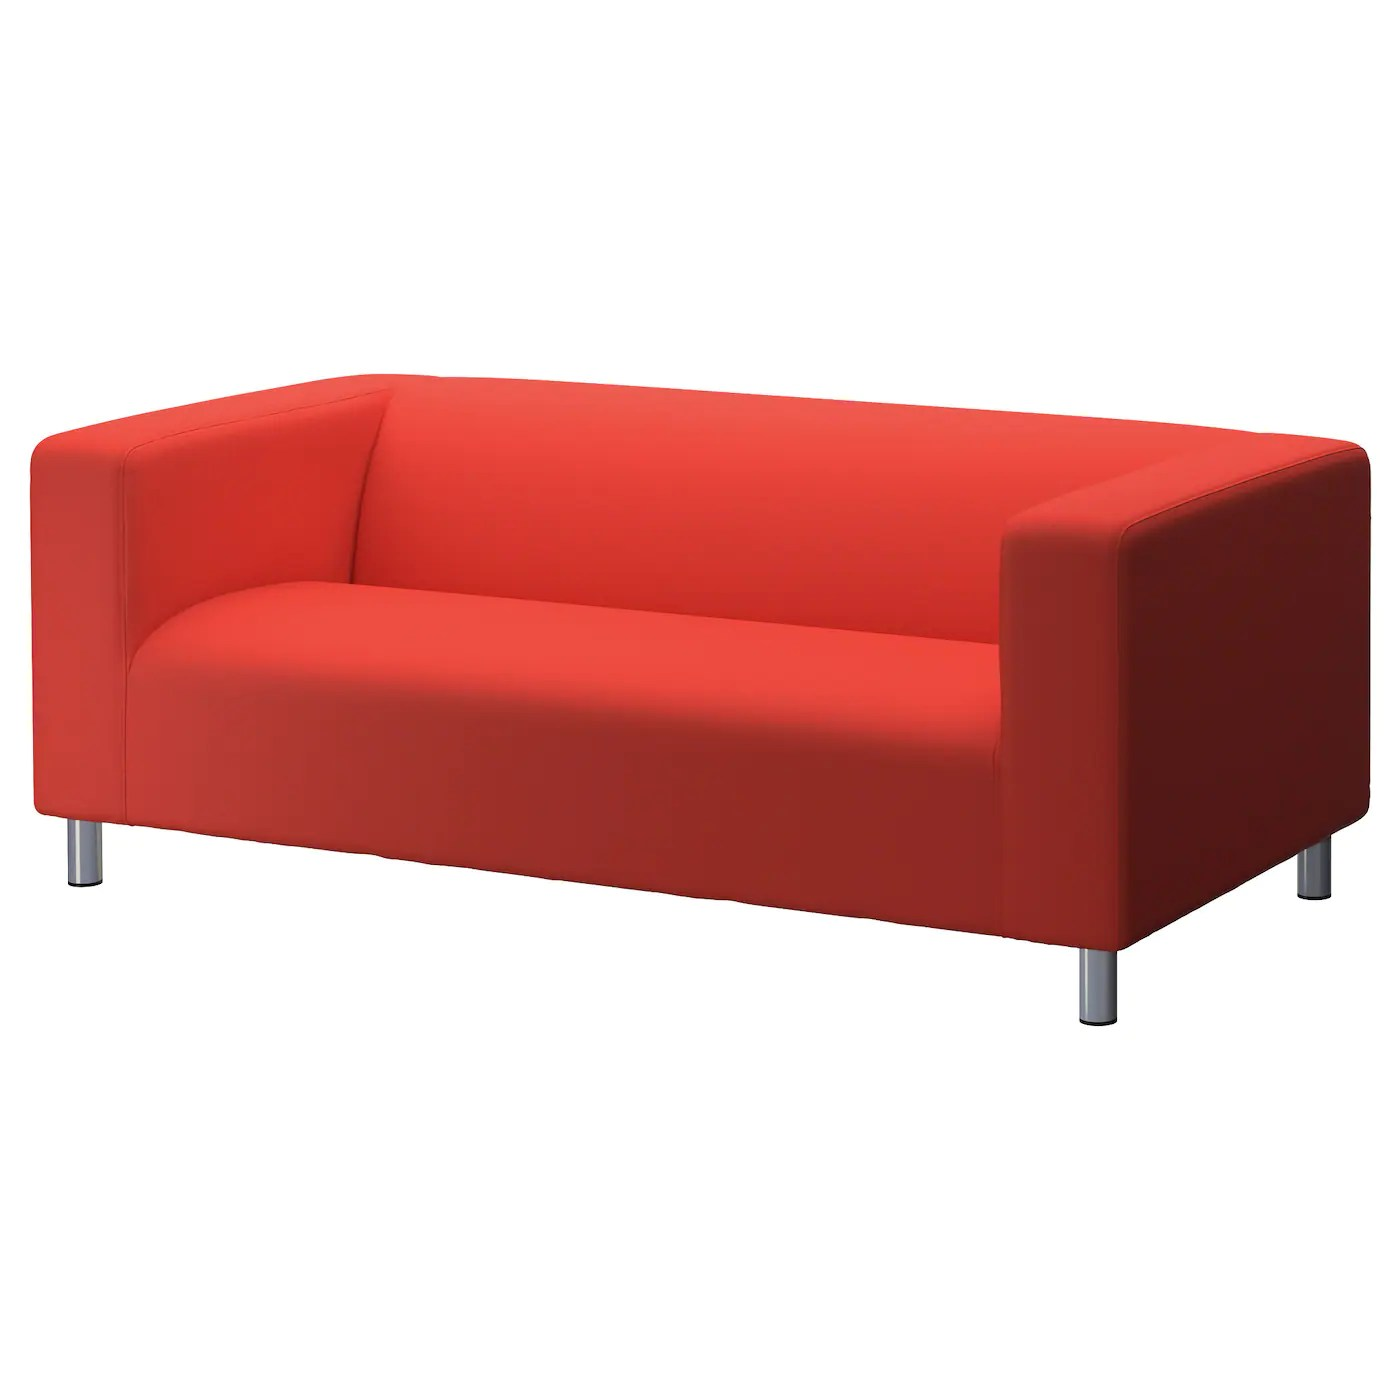 Sofa Klippan Klippan Two Seat Sofa Flackarp Red Orange Ikea